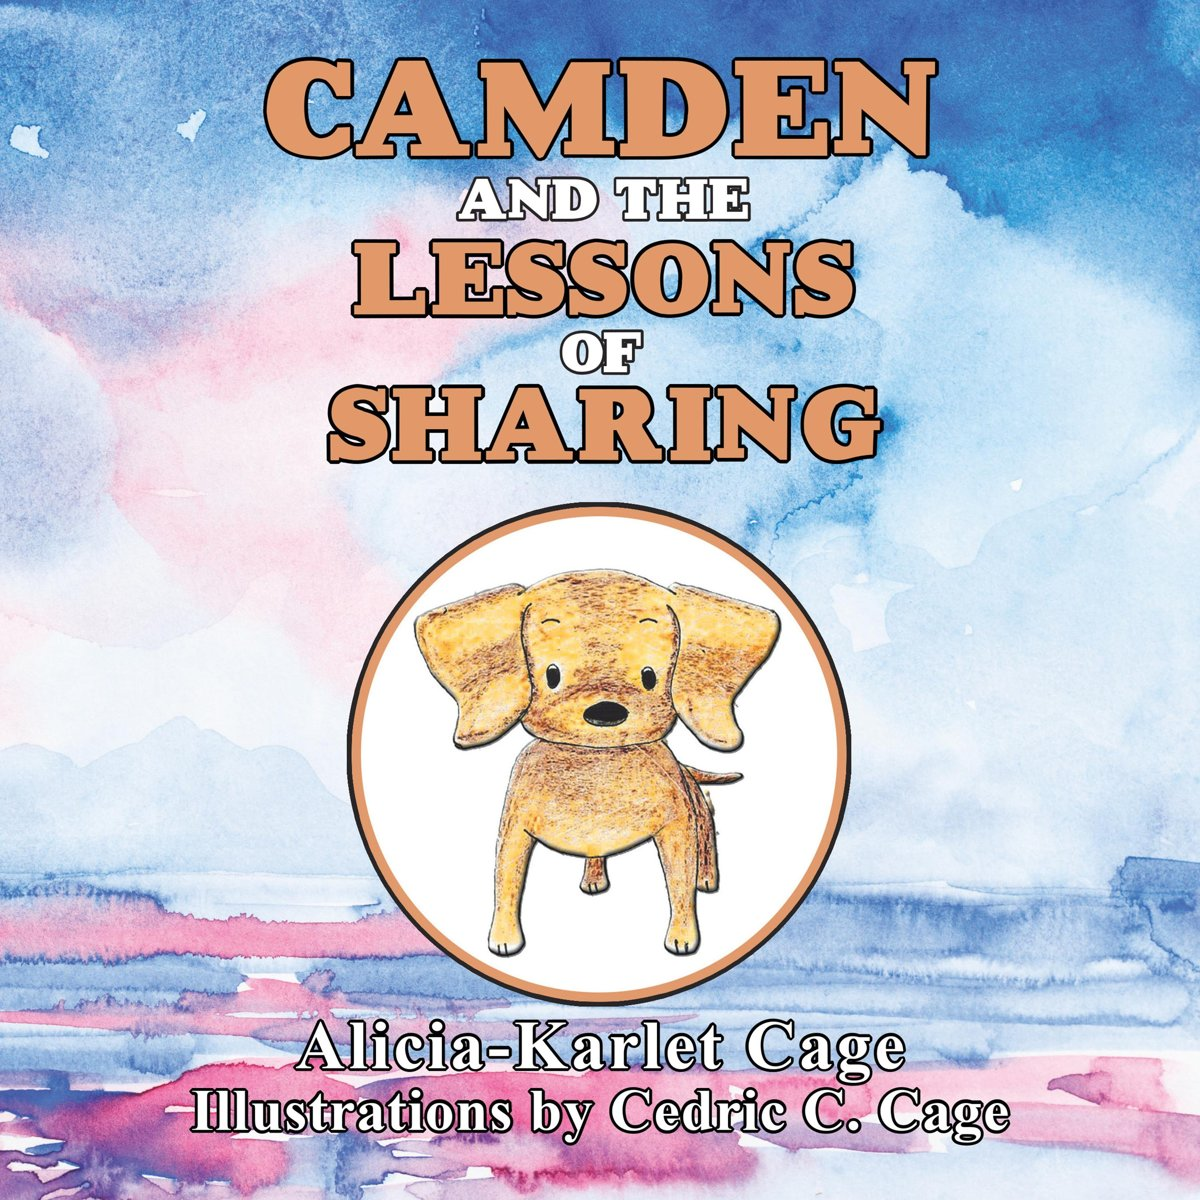 Camden and the Lessons of Sharing